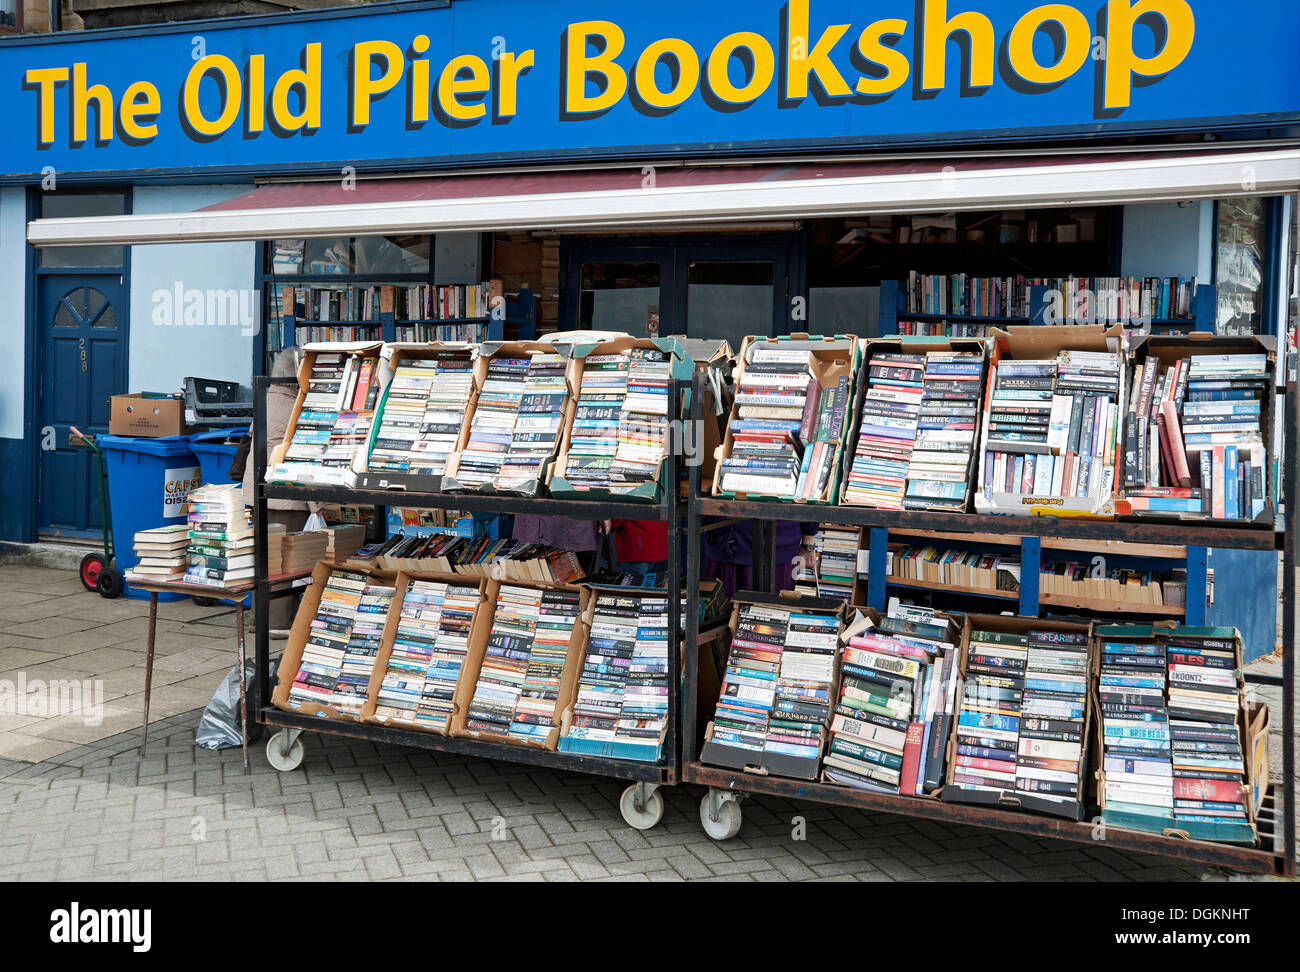 Racks of books outside a secondhand bookshop in Morecambe. - Stock Image